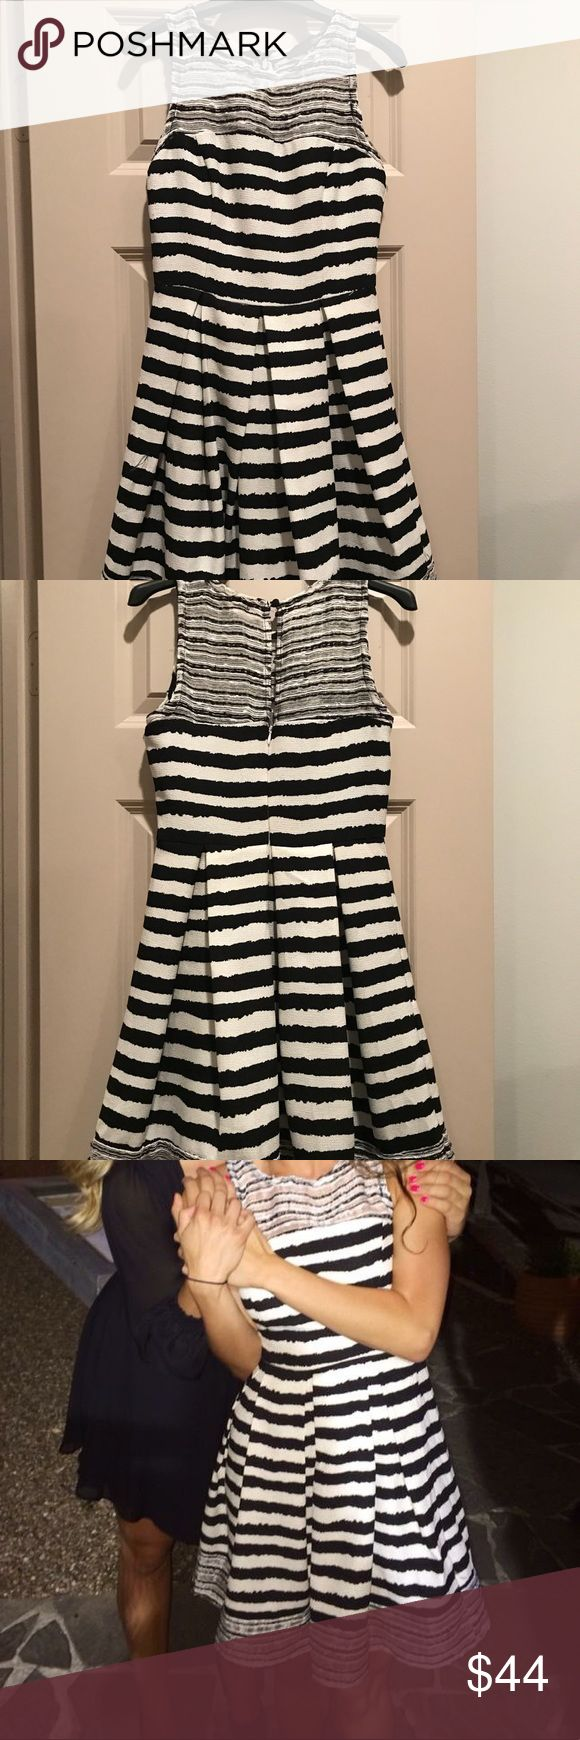 Black & White Striped Cocktail Dress This dress is fitted at the chest then flares out at the waist. The pattern makes such a fun statement! Only been worn once! Dresses Mini